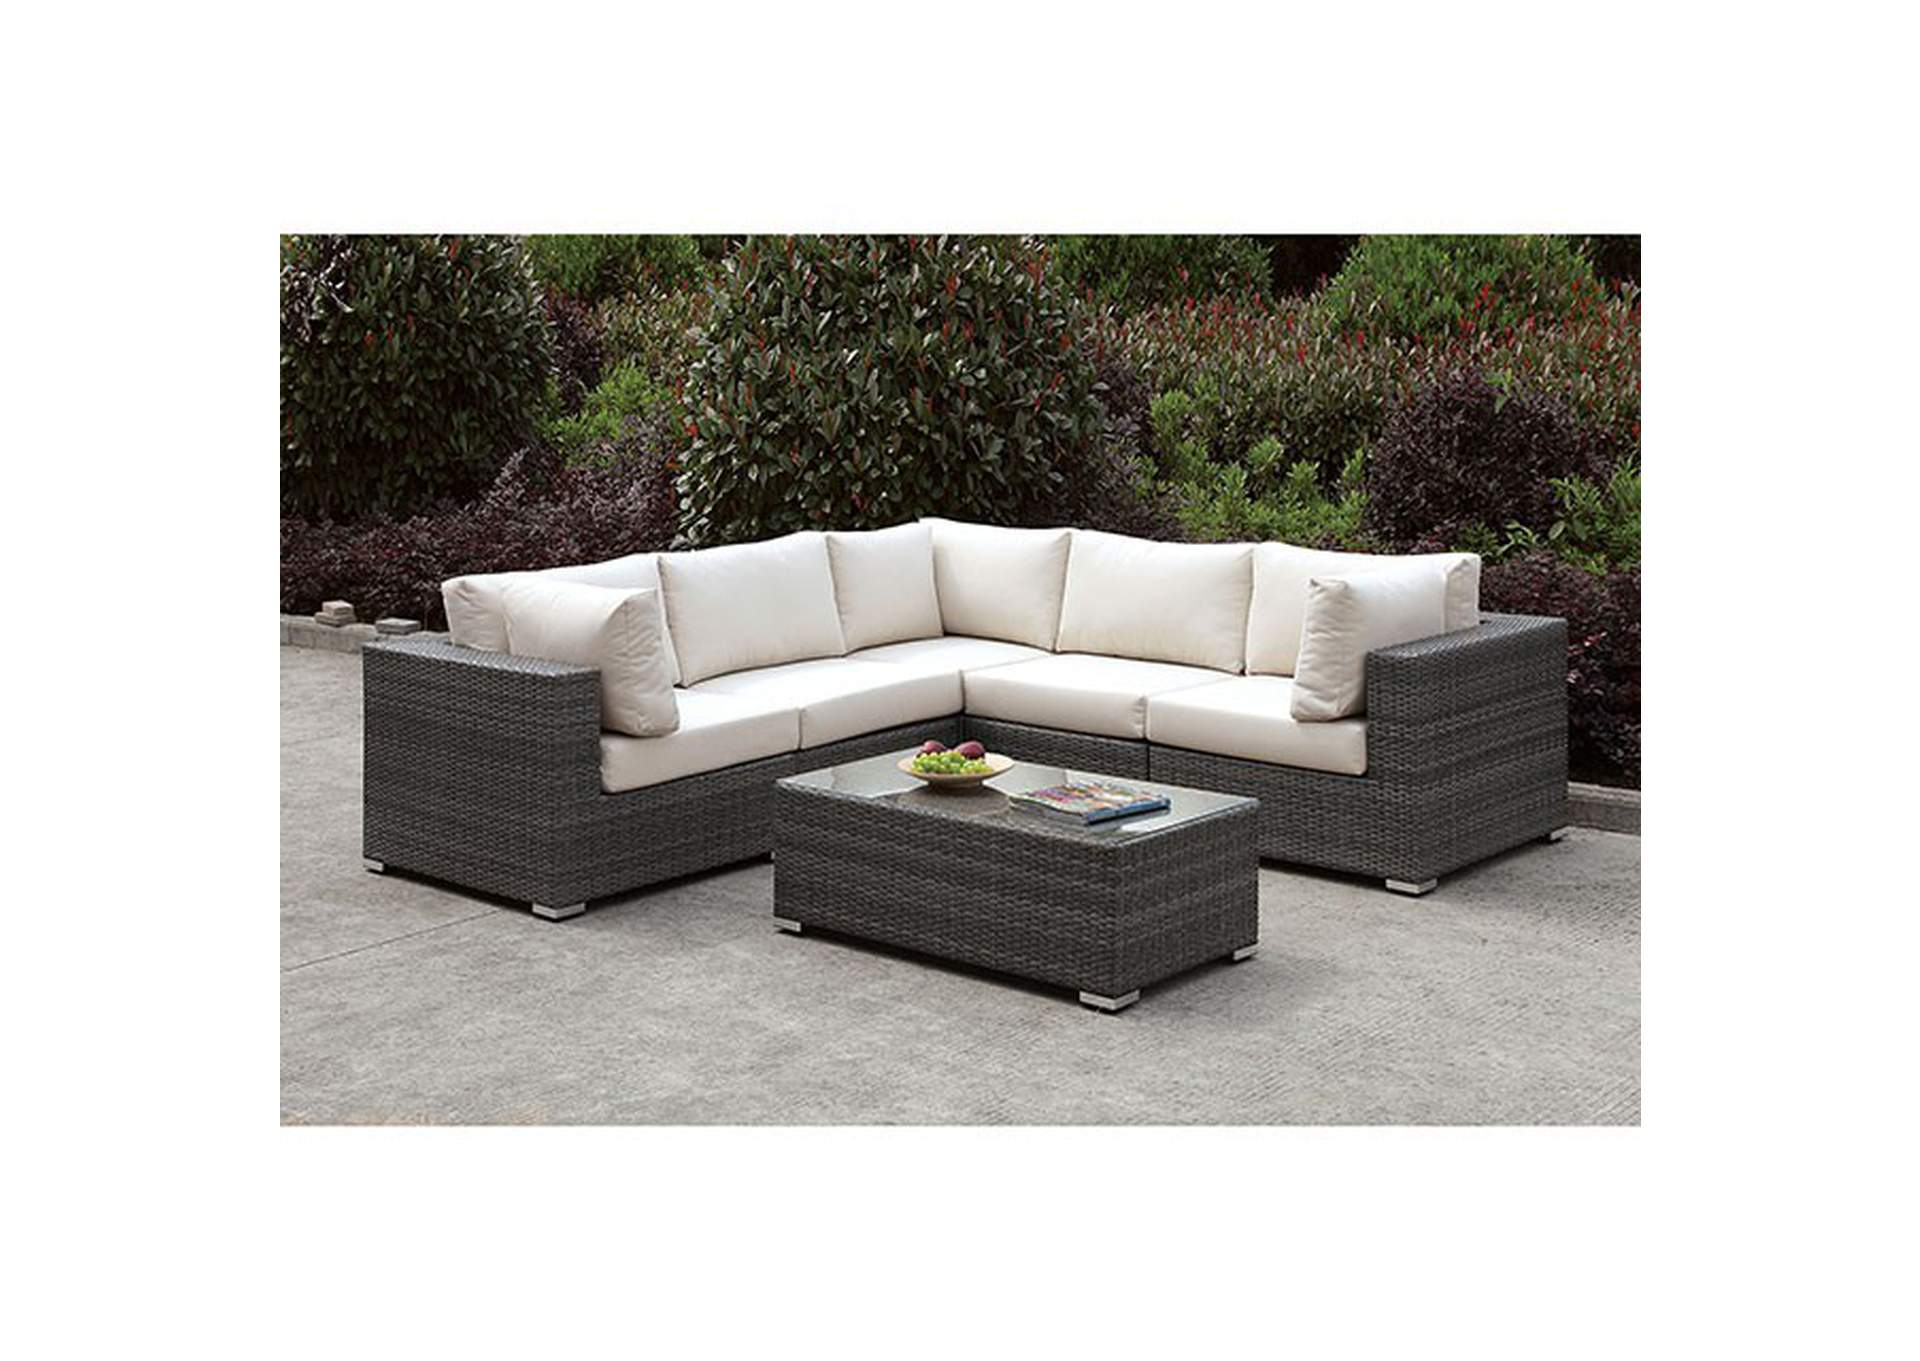 Somani Light Gray/Ivory Wicker L-Sectional & Coffee Table,Furniture of America